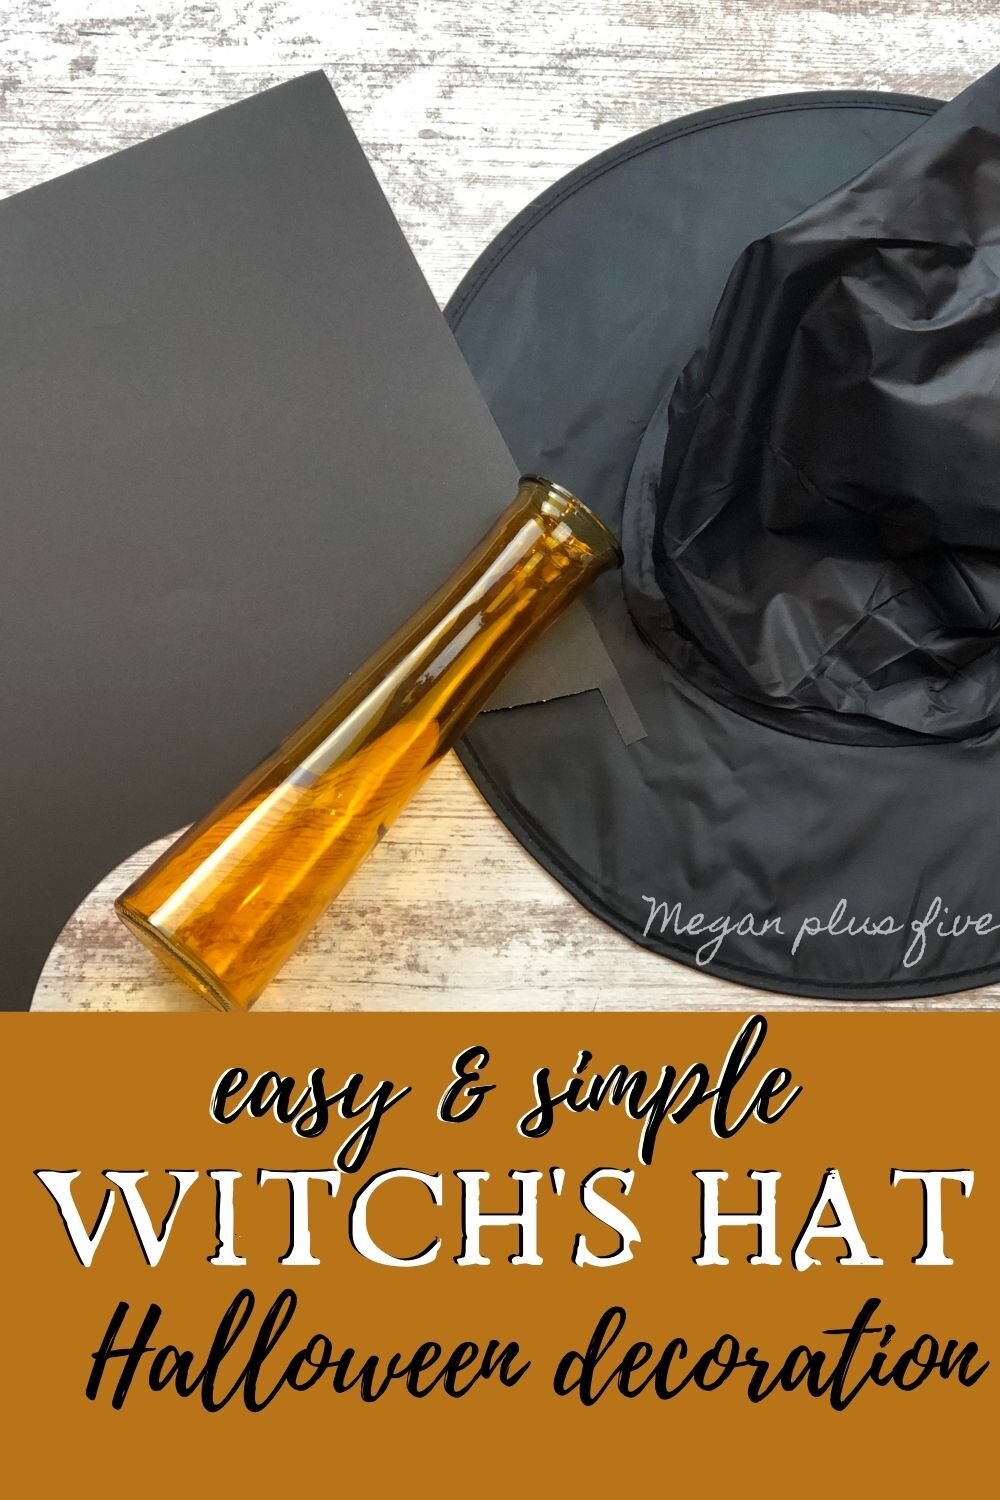 How to make an easy and cute Halloween decoration using a Dollar Tree vase and a witch hat. DIY Halloween decor using your Cricut cutting machine. Make your own adorable witch hat Halloween decoration.